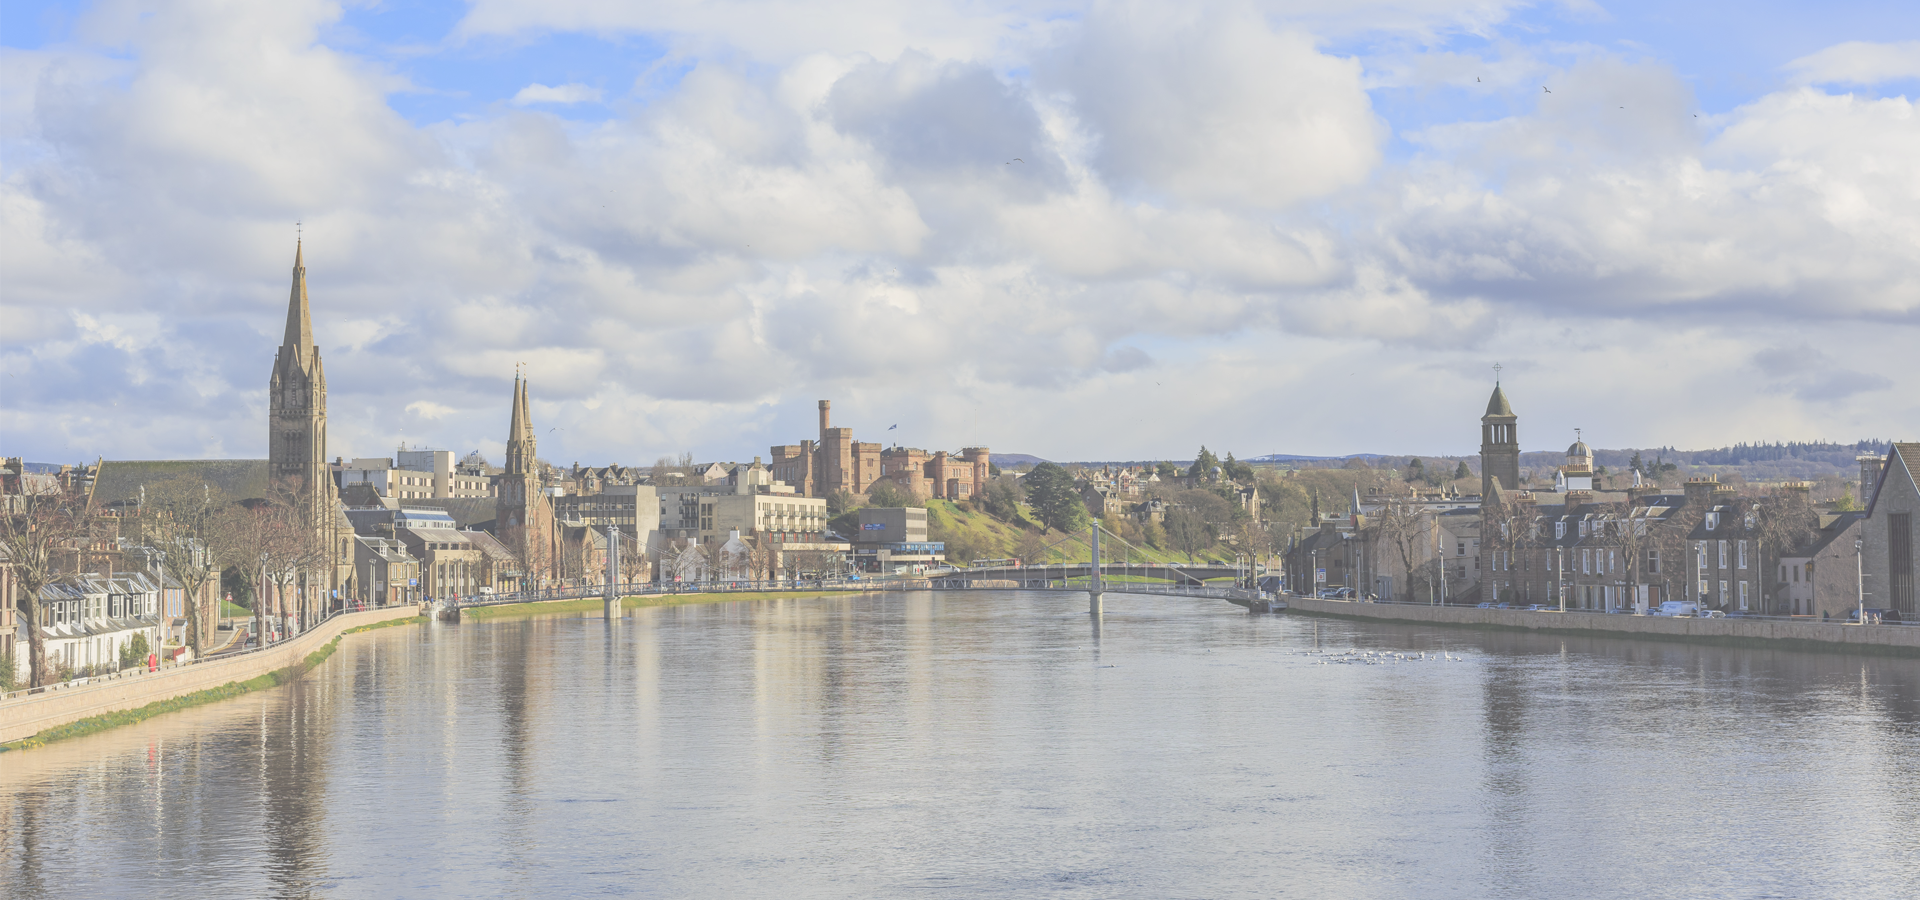 Peer-to-peer advisory in Inverness, Highland, Scotland, Great Britain